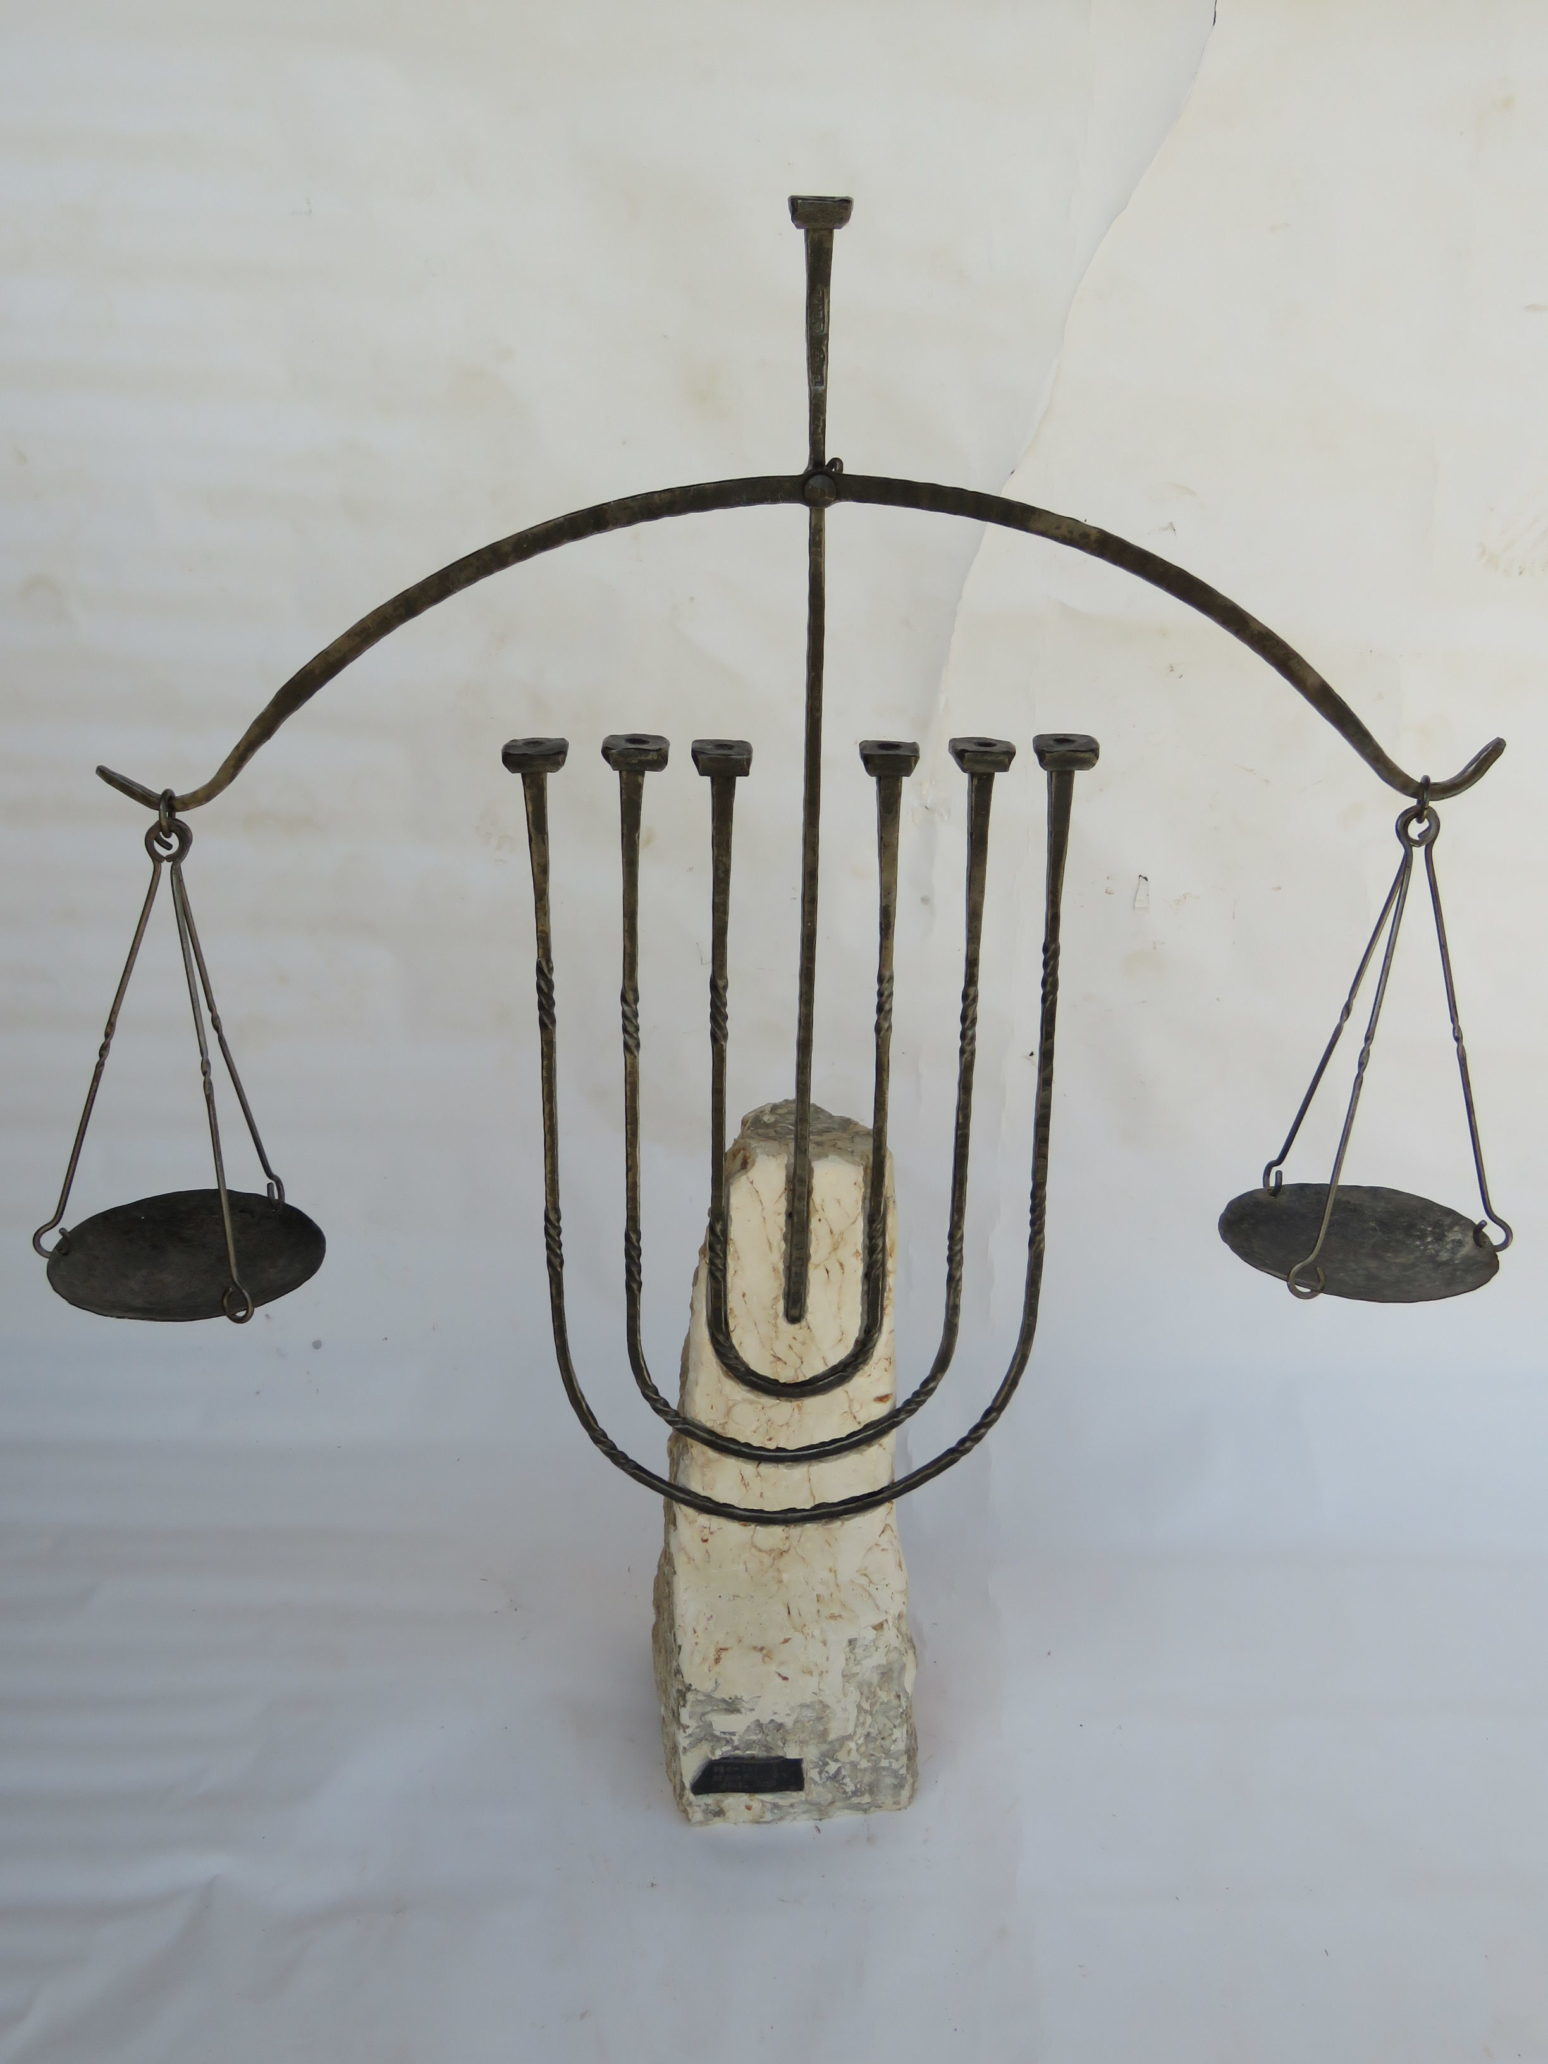 'The Menorah of Justice' - Large Menorah of Iron & Stone integrating the symbol of Justice